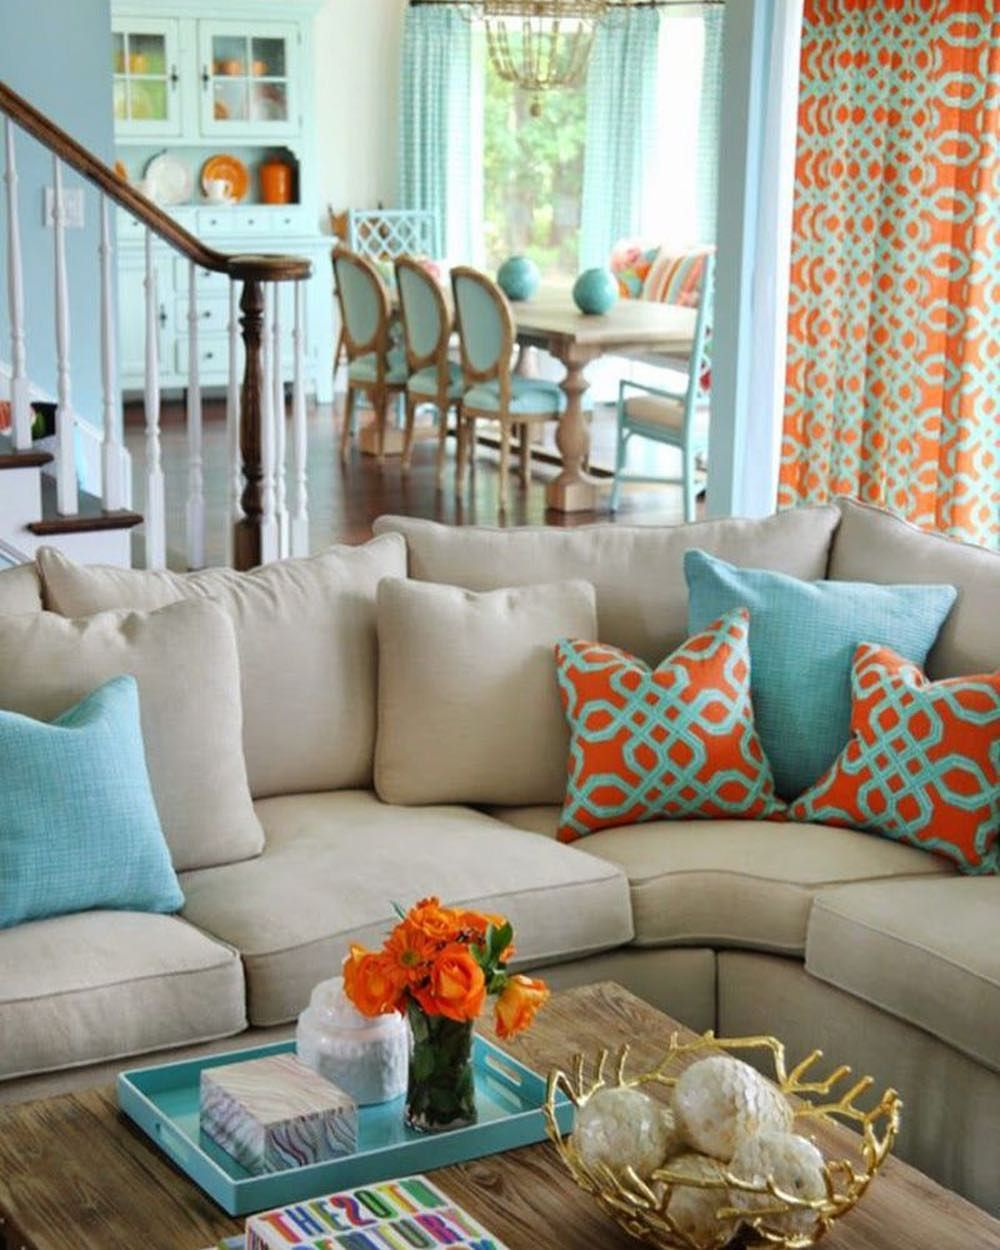 Bright Orange Living Room Accessories: Add A Whimsical Touch To Your Decor By Using Bold Shades